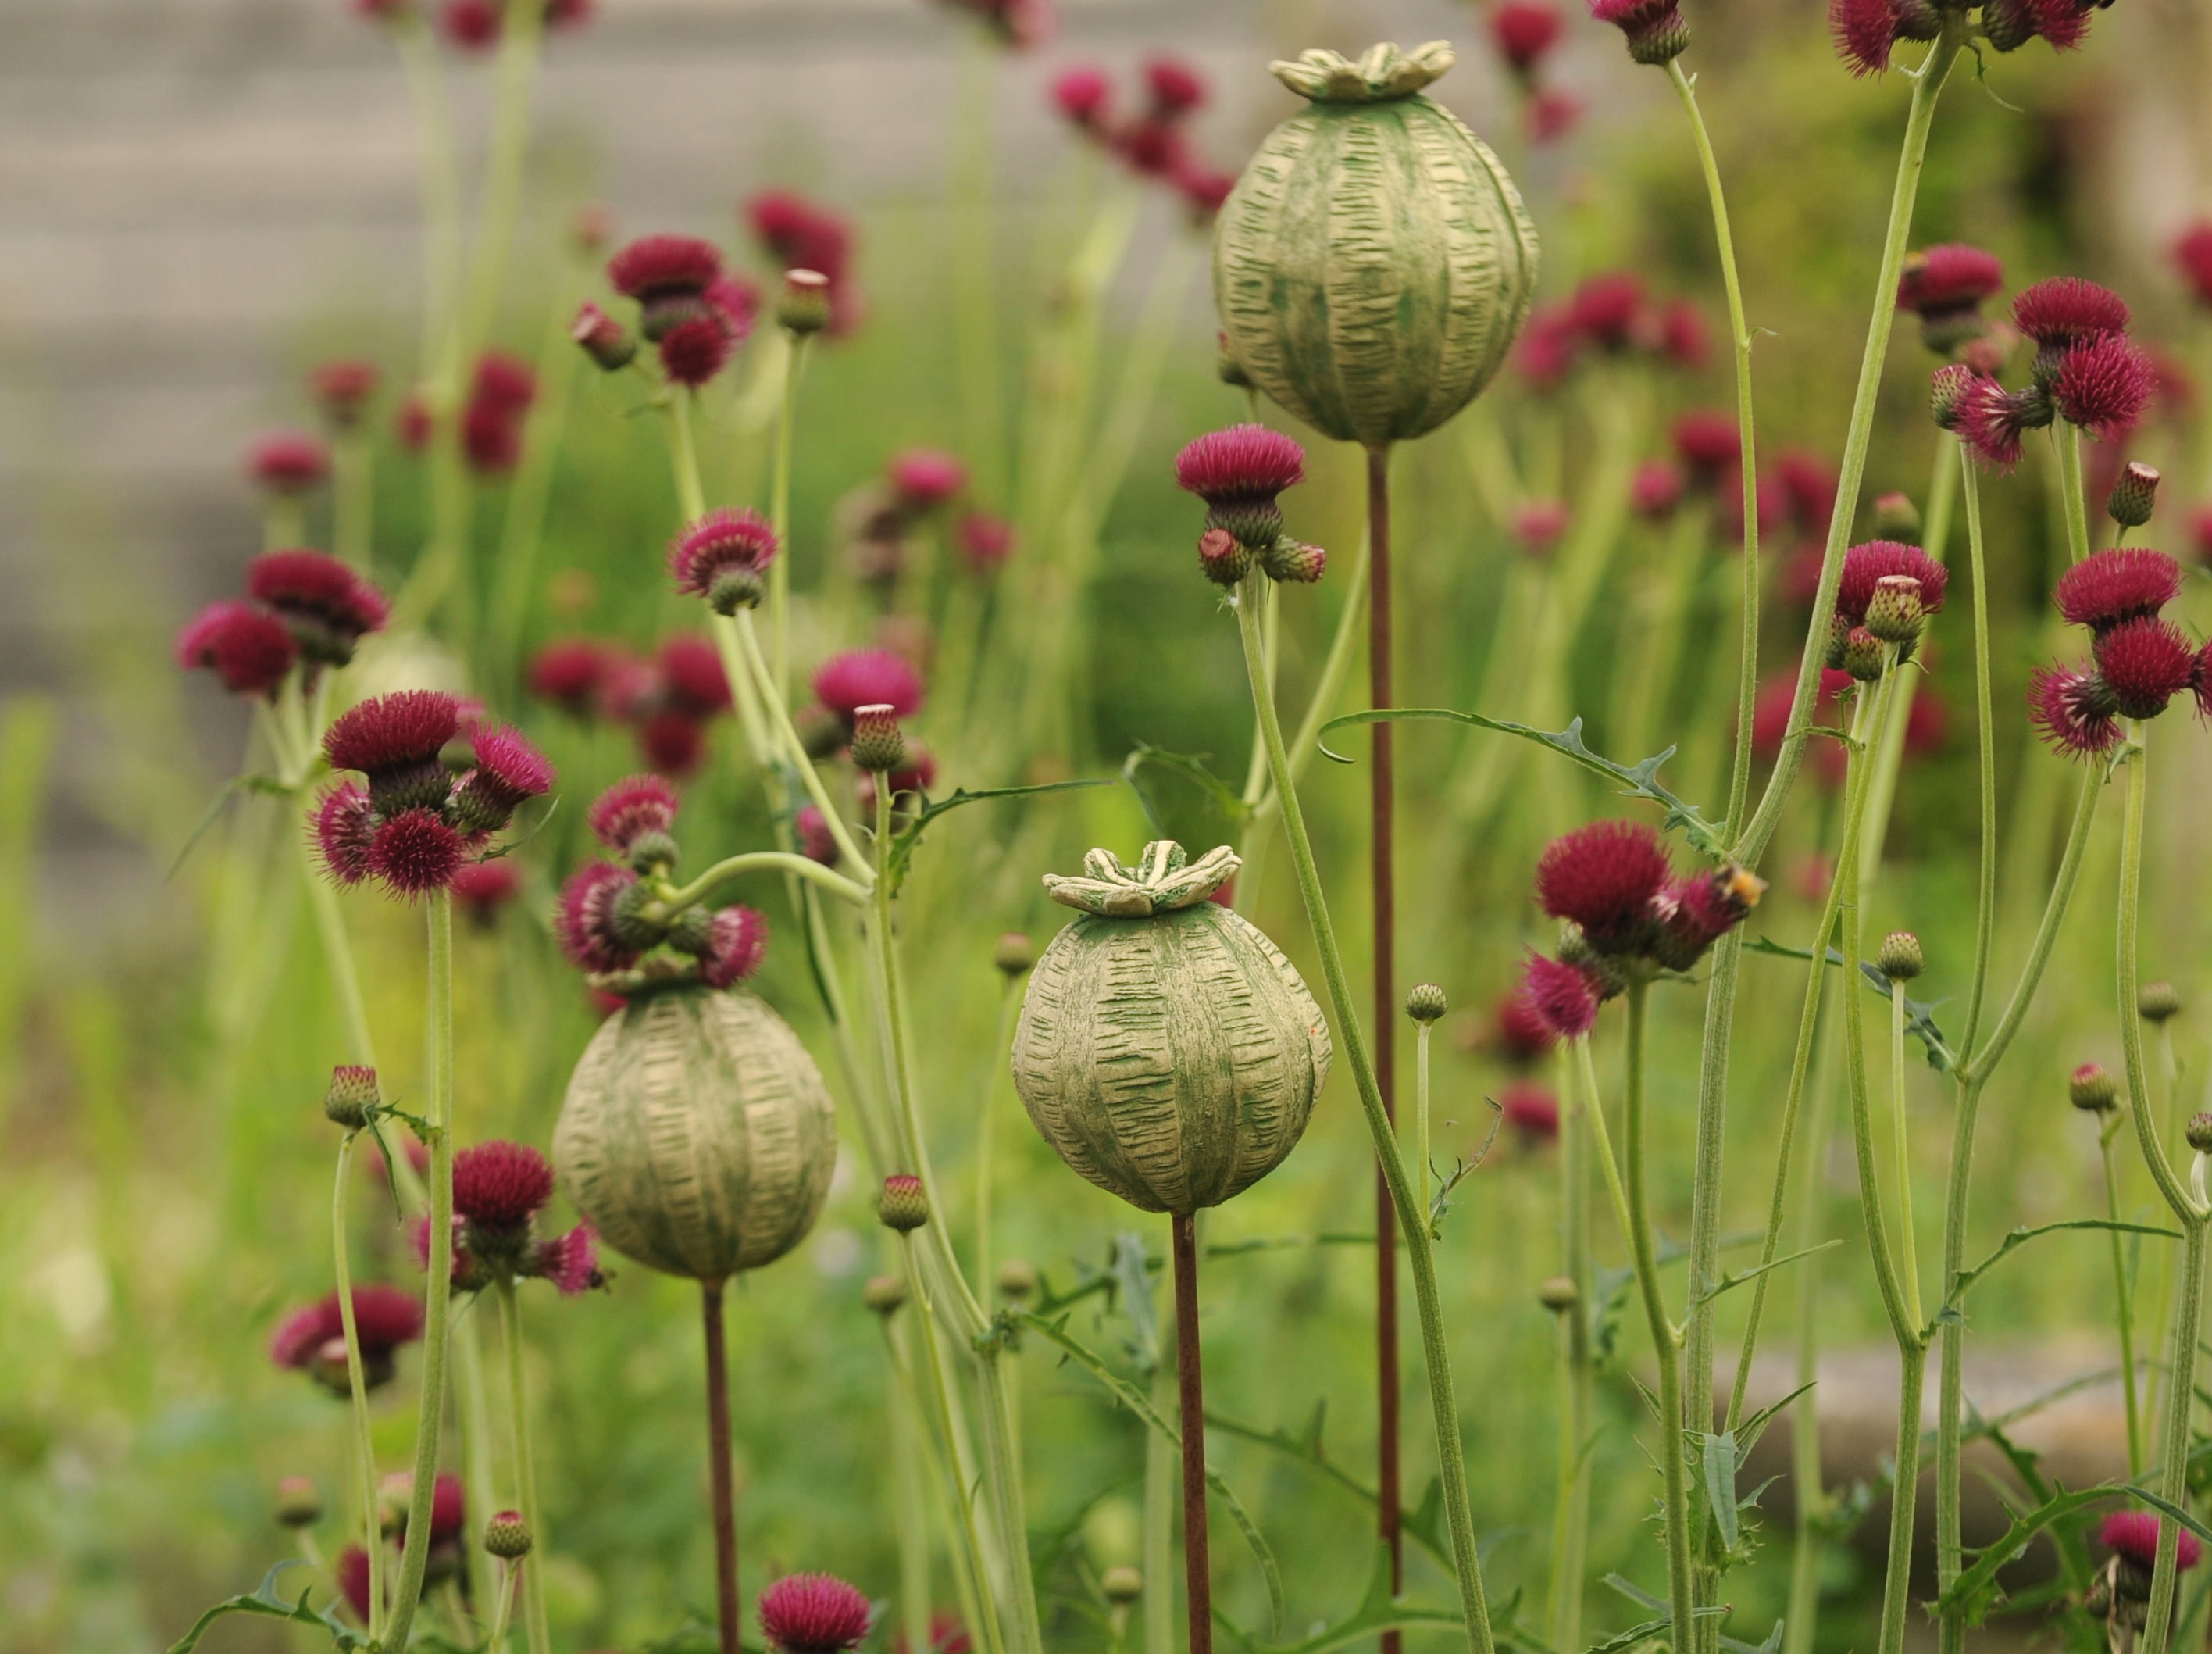 Large seed heads